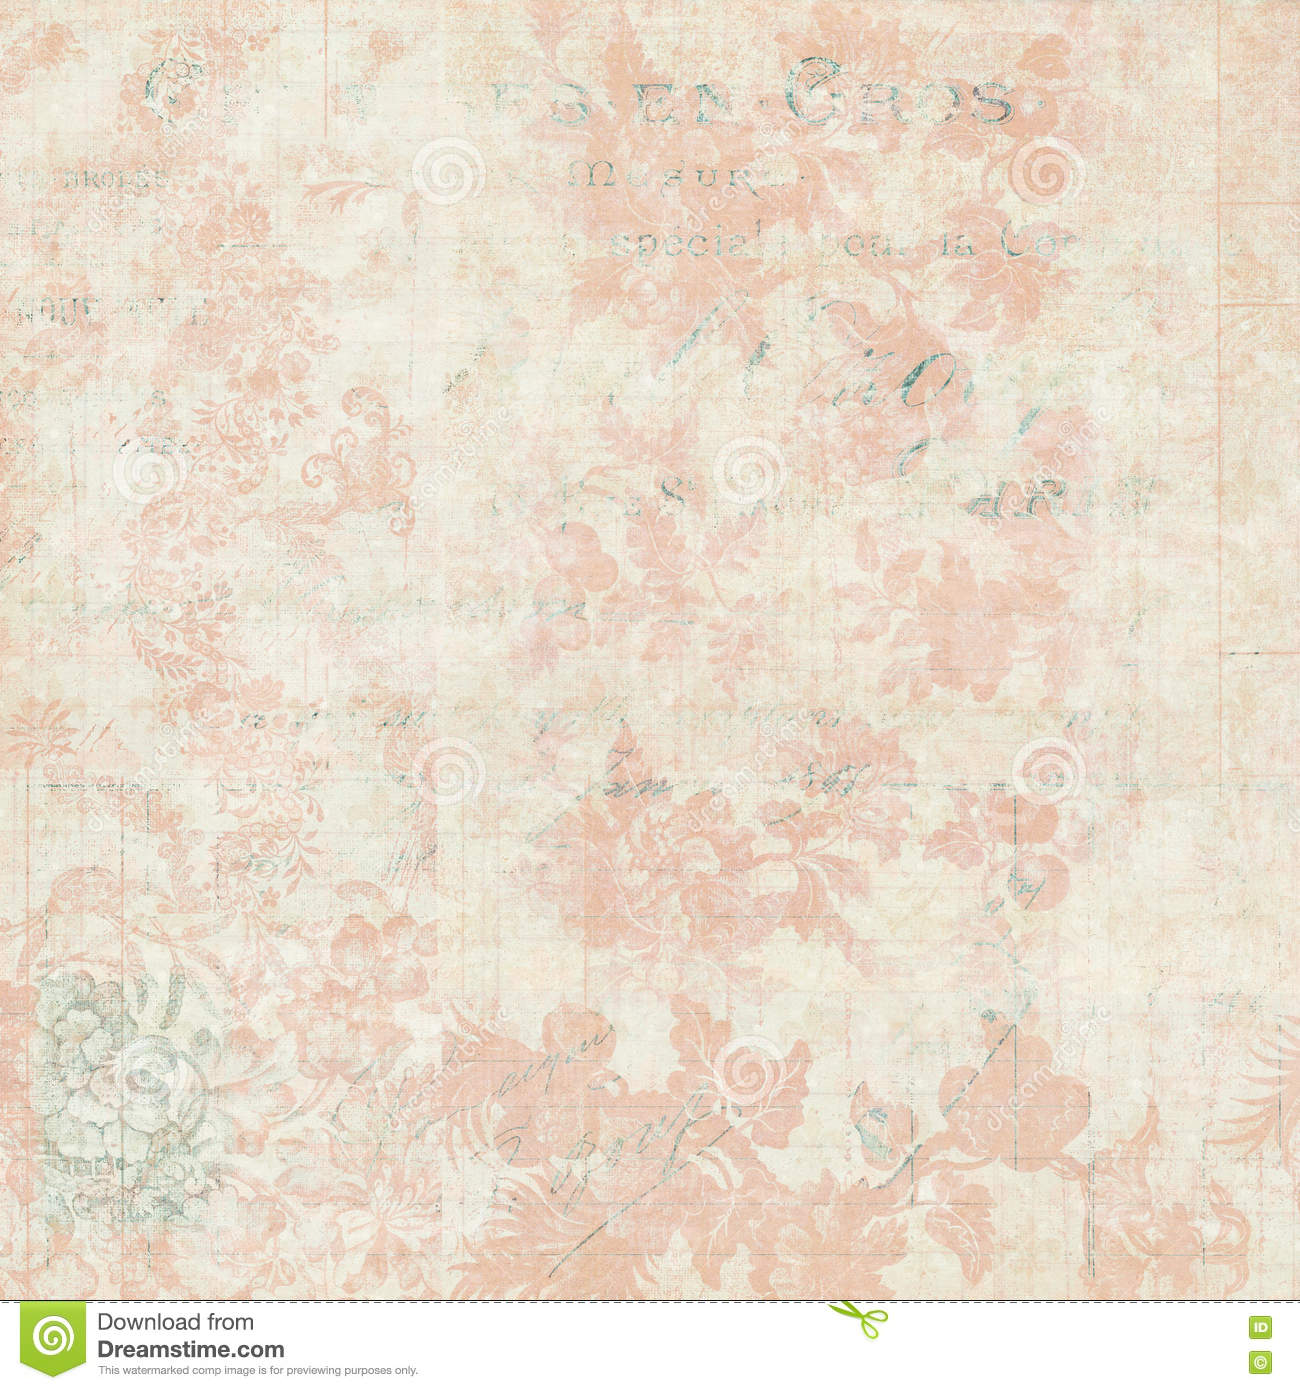 Vintage Pink And Cream Grungy Faded Shabby Chic Abstract Floral